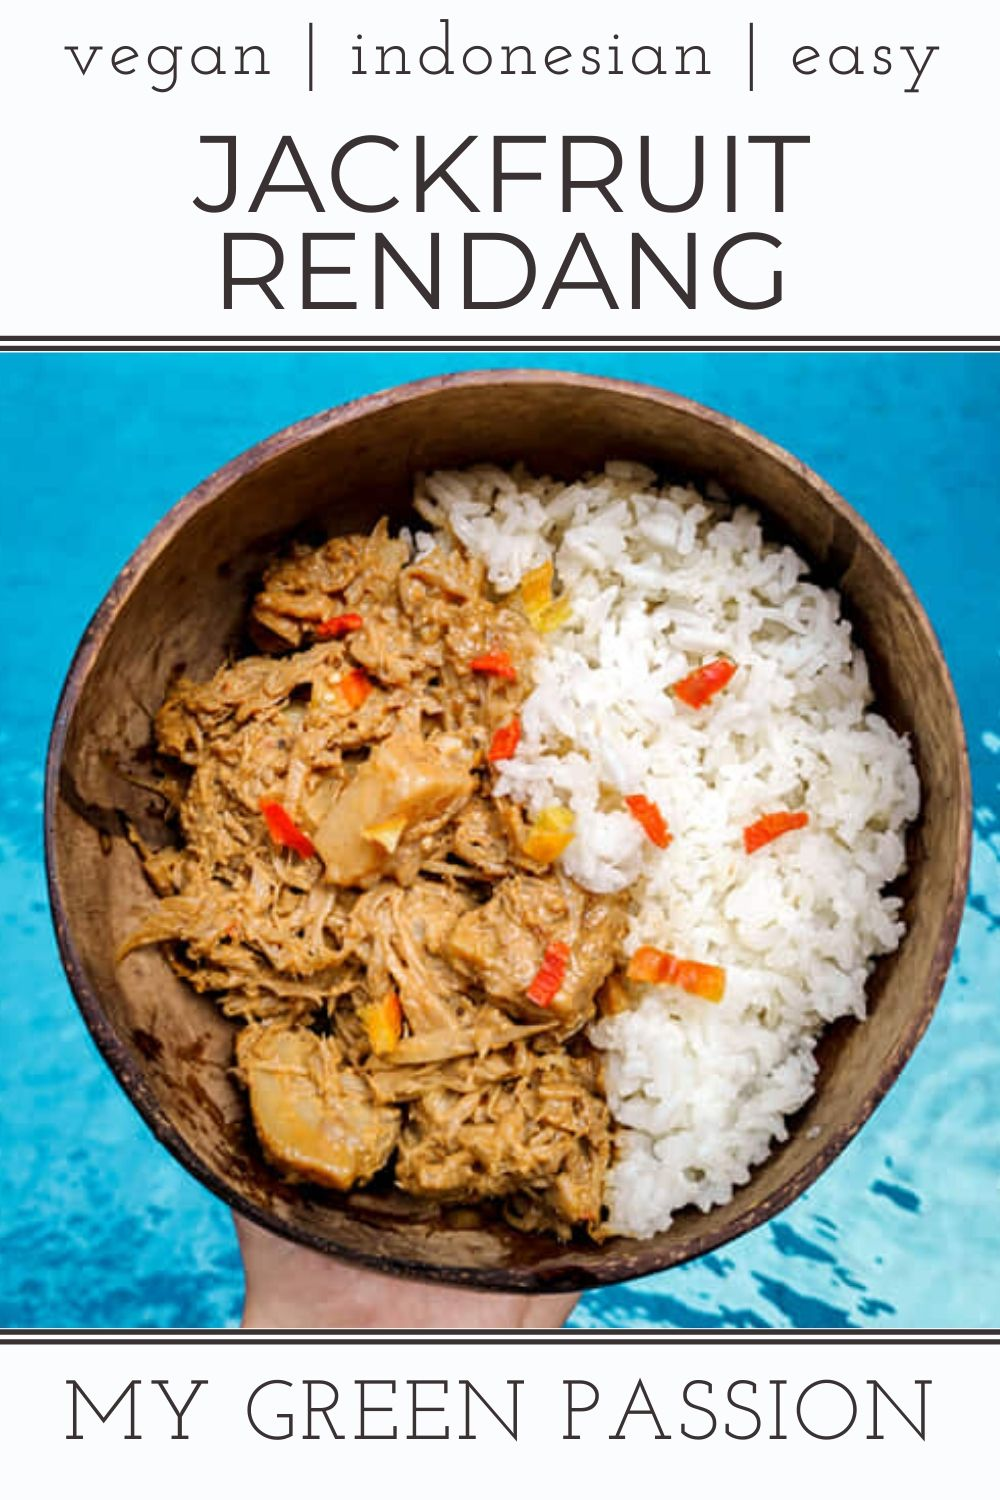 vegan jackfruit rendang curry indonesian easy delicious gluten-free plant-based with potato